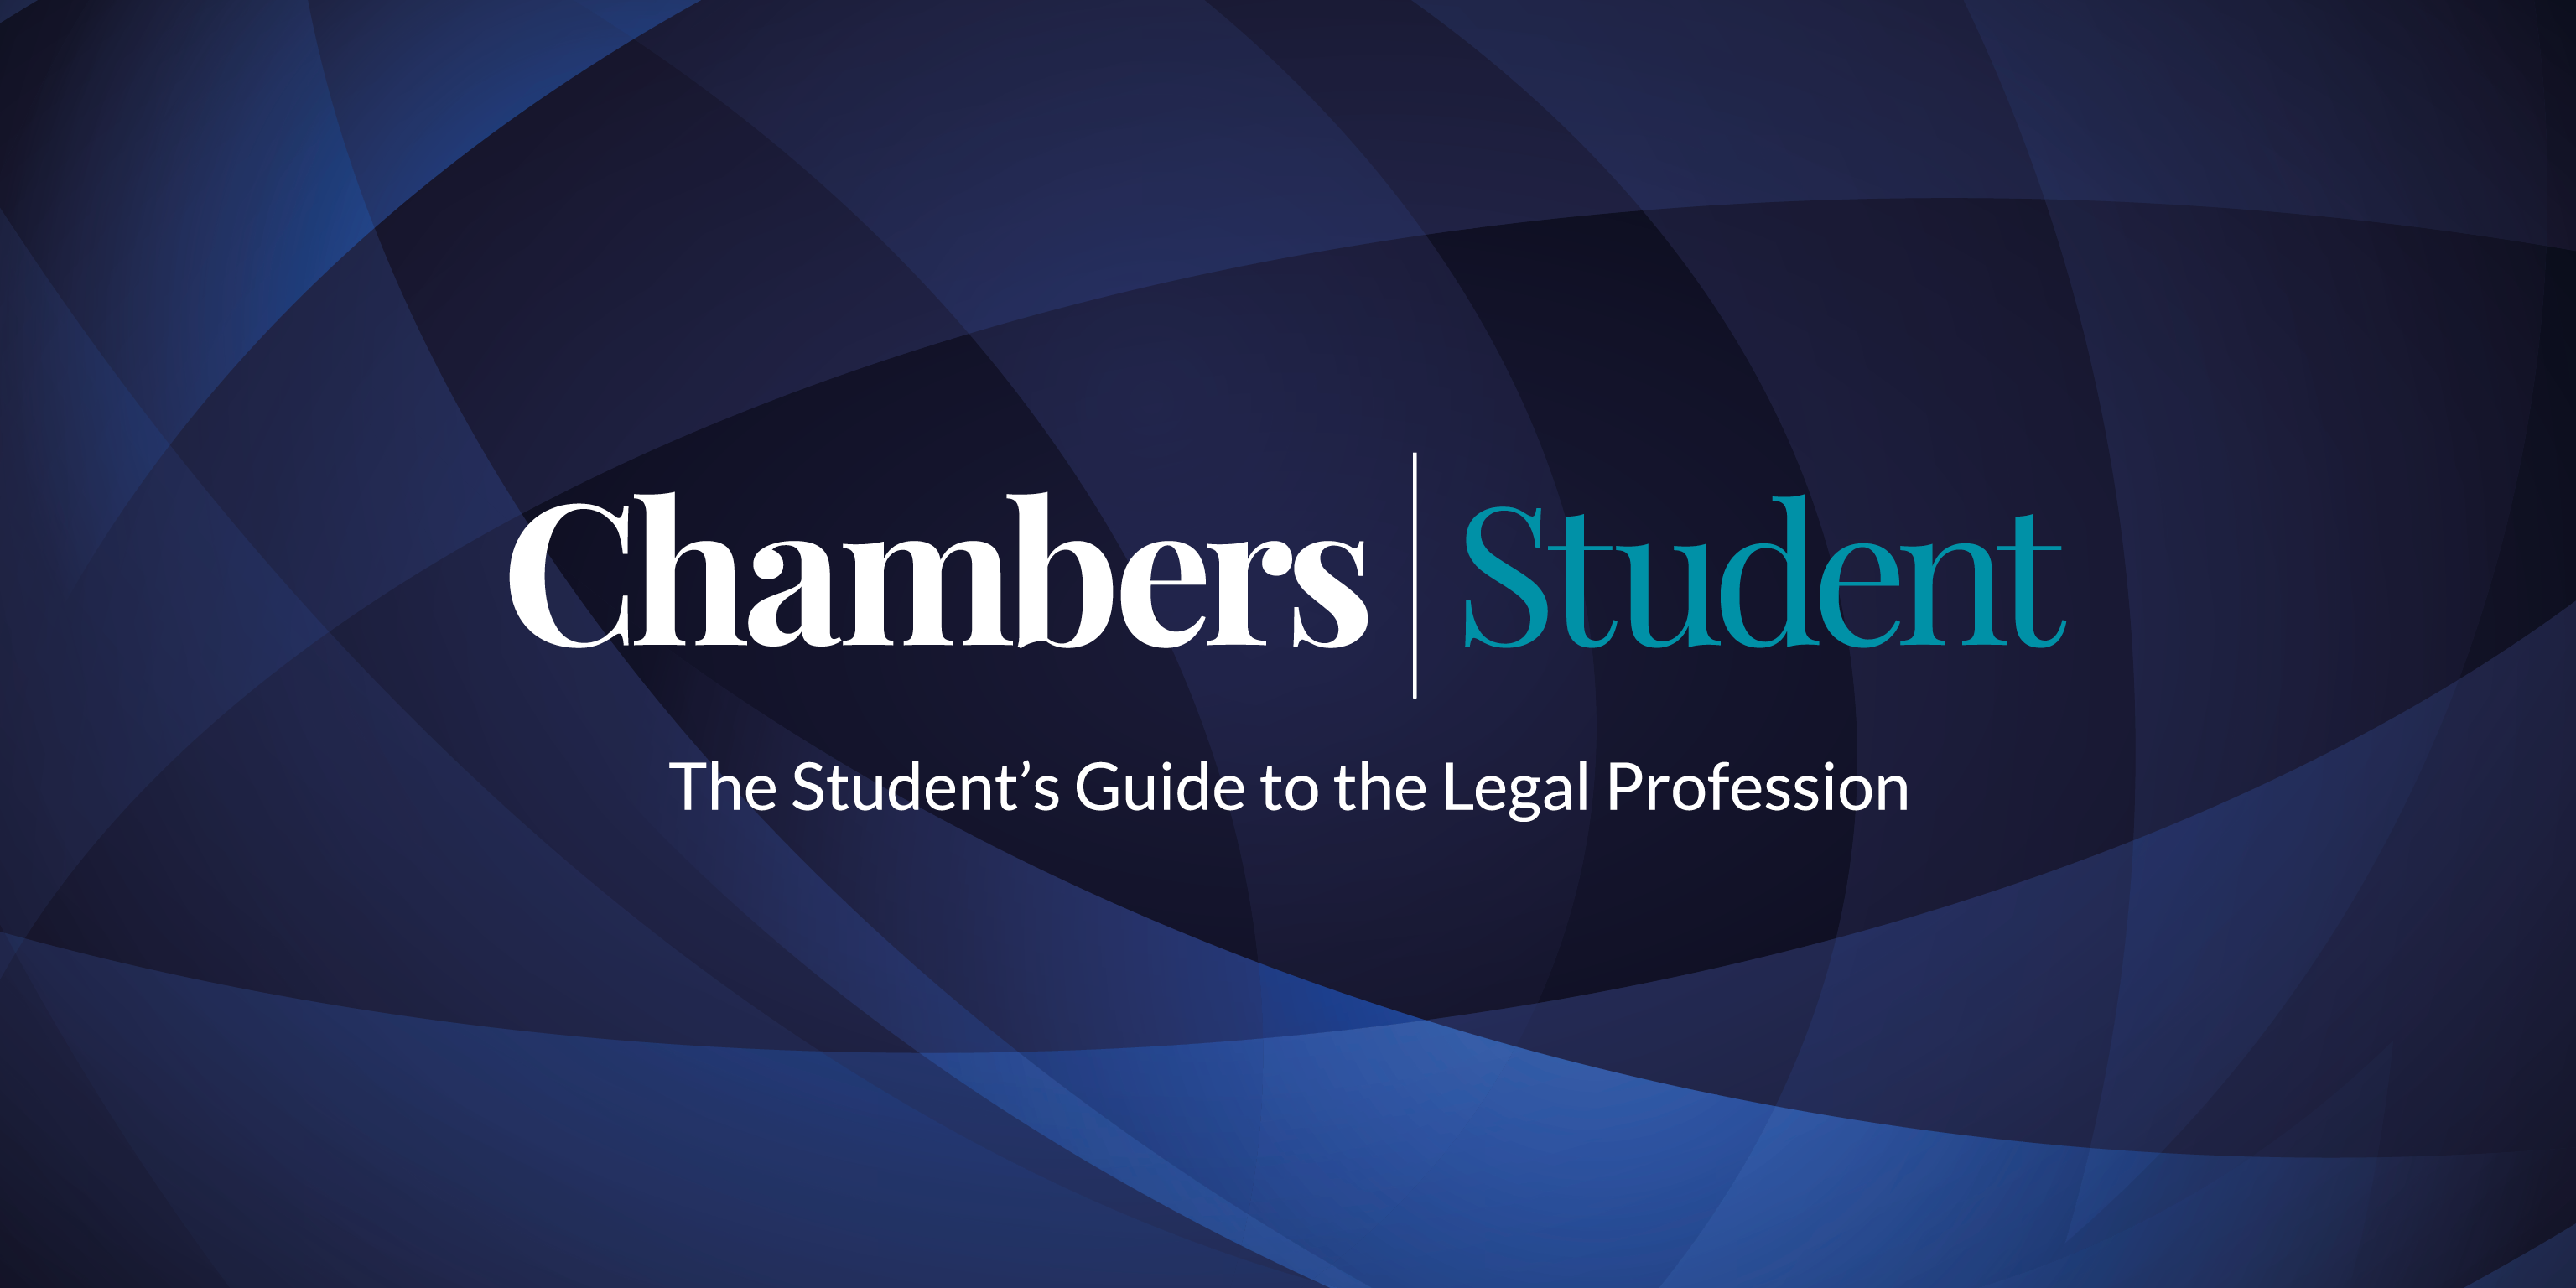 The new guide is here - Chambers Student Guide